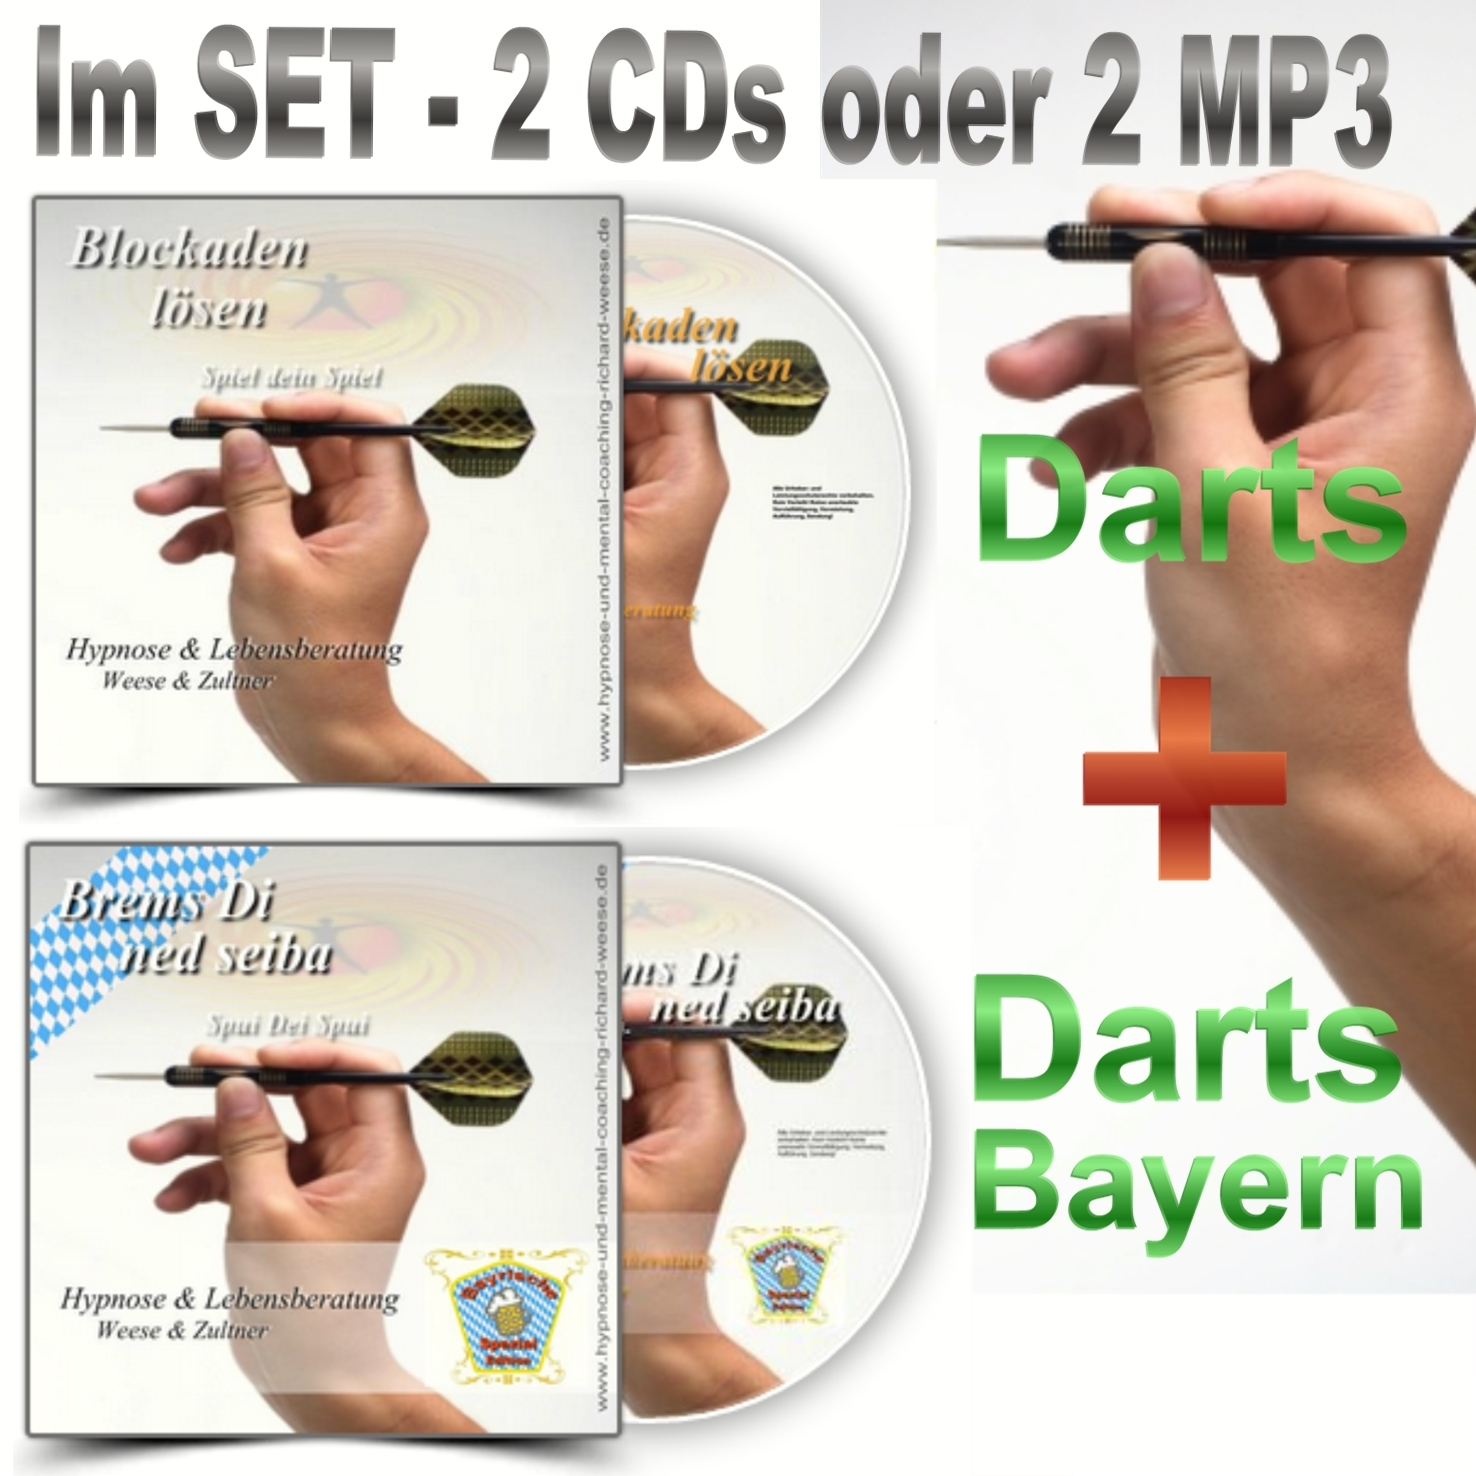 hypnose_set_darts